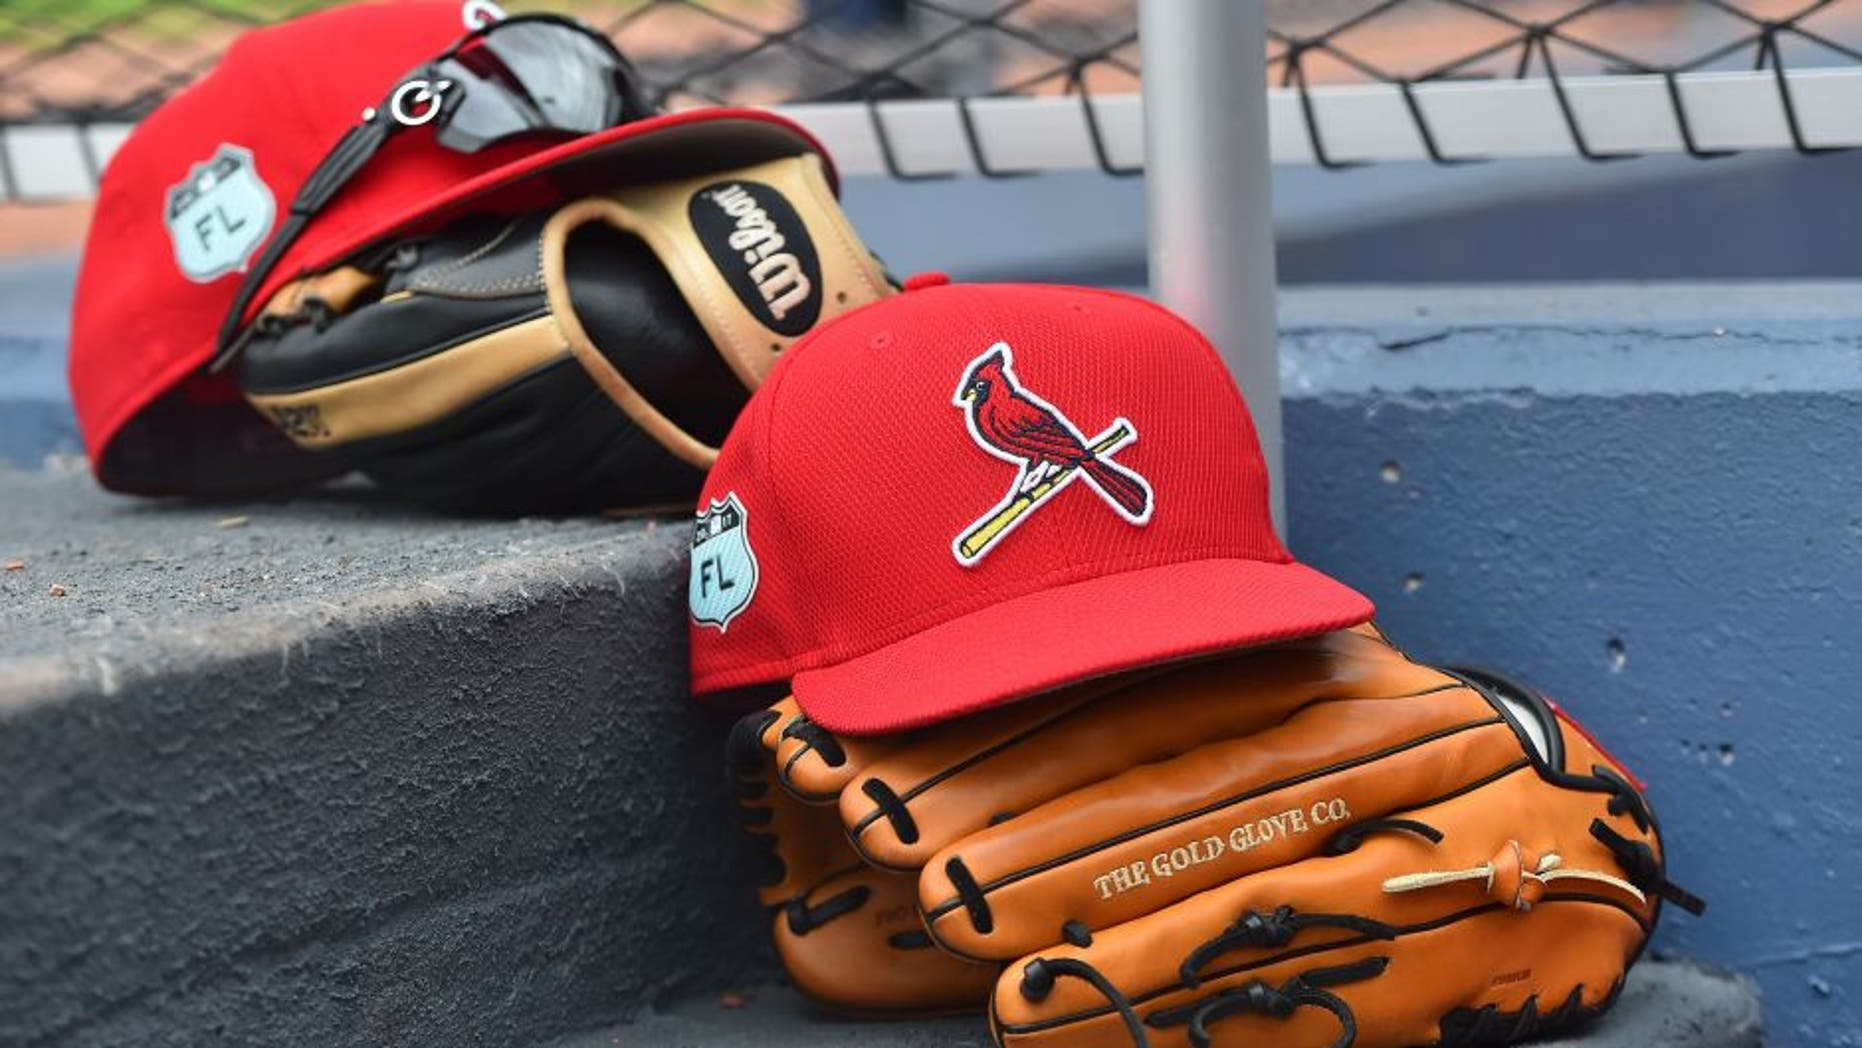 Mar 3, 2017; West Palm Beach, FL, USA; A view of St. Louis Cardinals hats and gloves on the steps of the dugout in the game against the Washington Nationals at The Ballpark of the Palm Beaches. Mandatory Credit: Jasen Vinlove-USA TODAY Sports